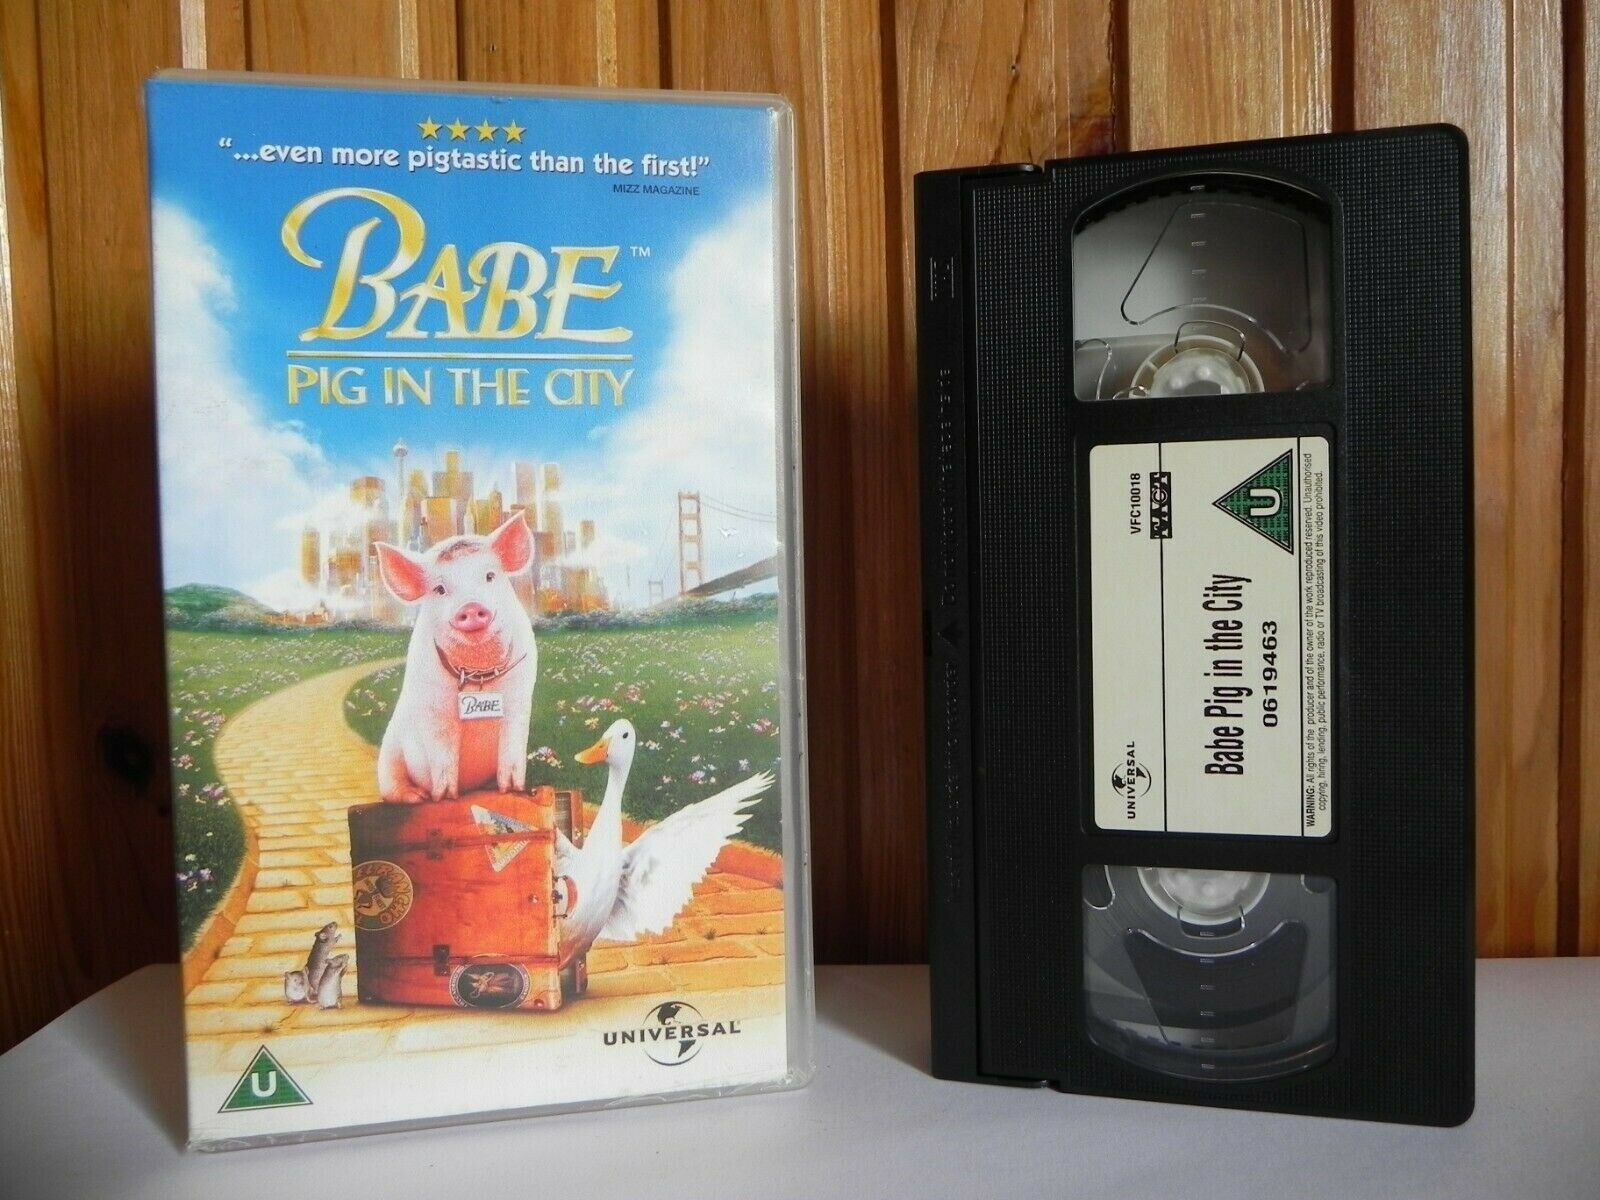 Babe: Pig In The City - Universal - Family - Adventure - Children's - Pal VHS